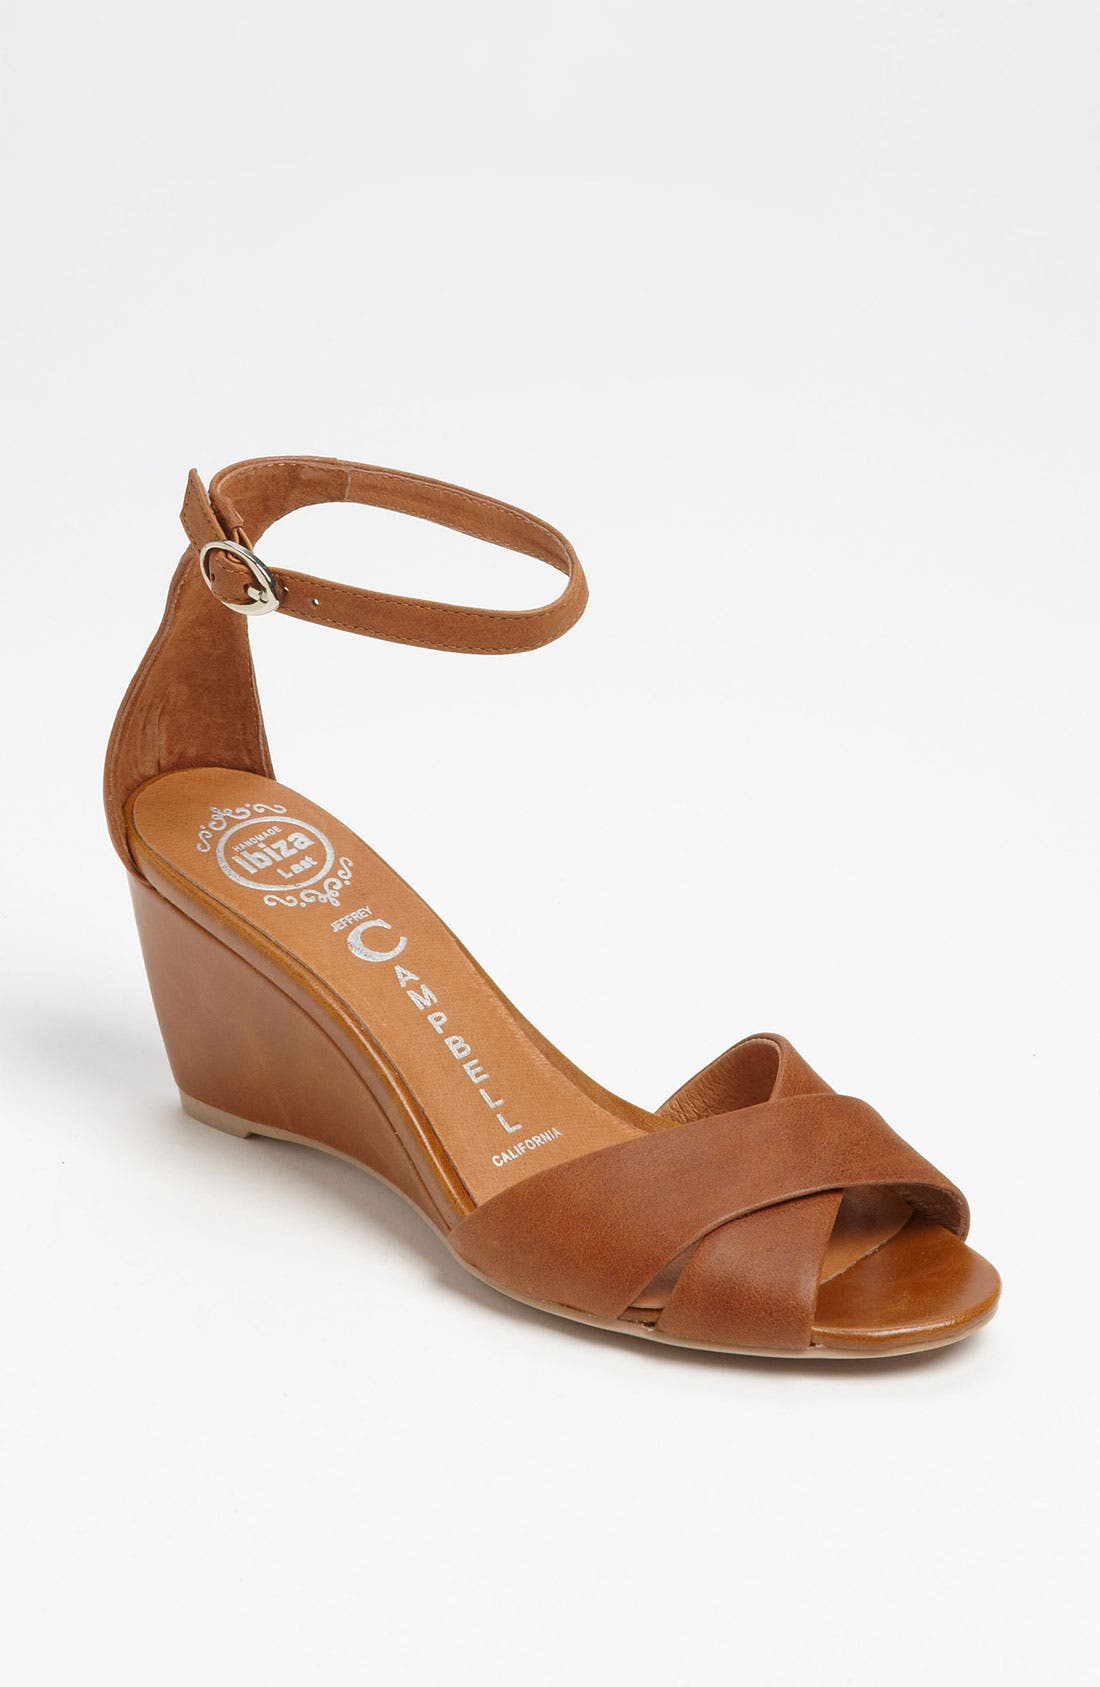 Alternate Image 1 Selected - Jeffrey Campbell 'Trudeau' Sandal